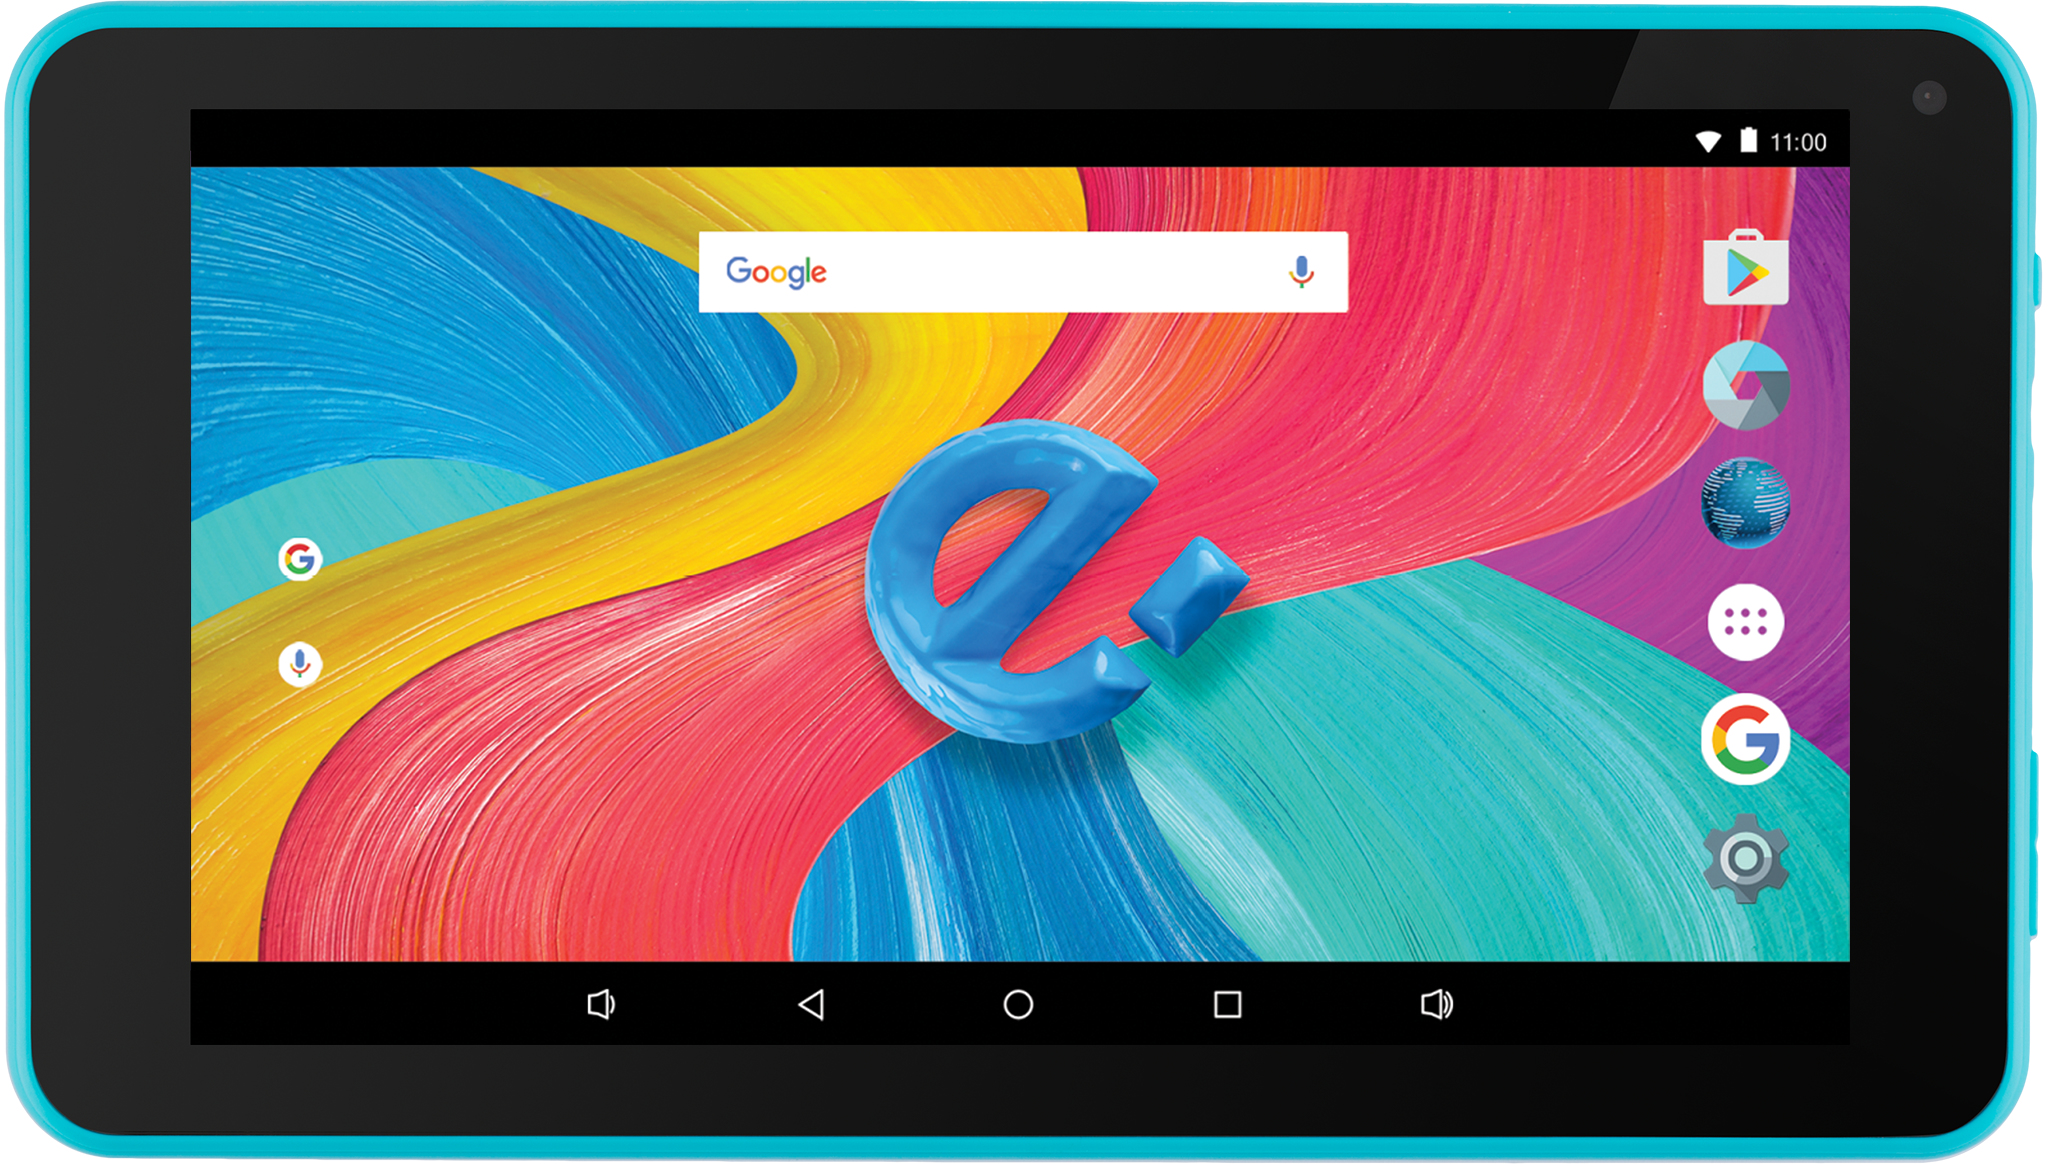 BEAUTY 2 8GB AZUL TABLET